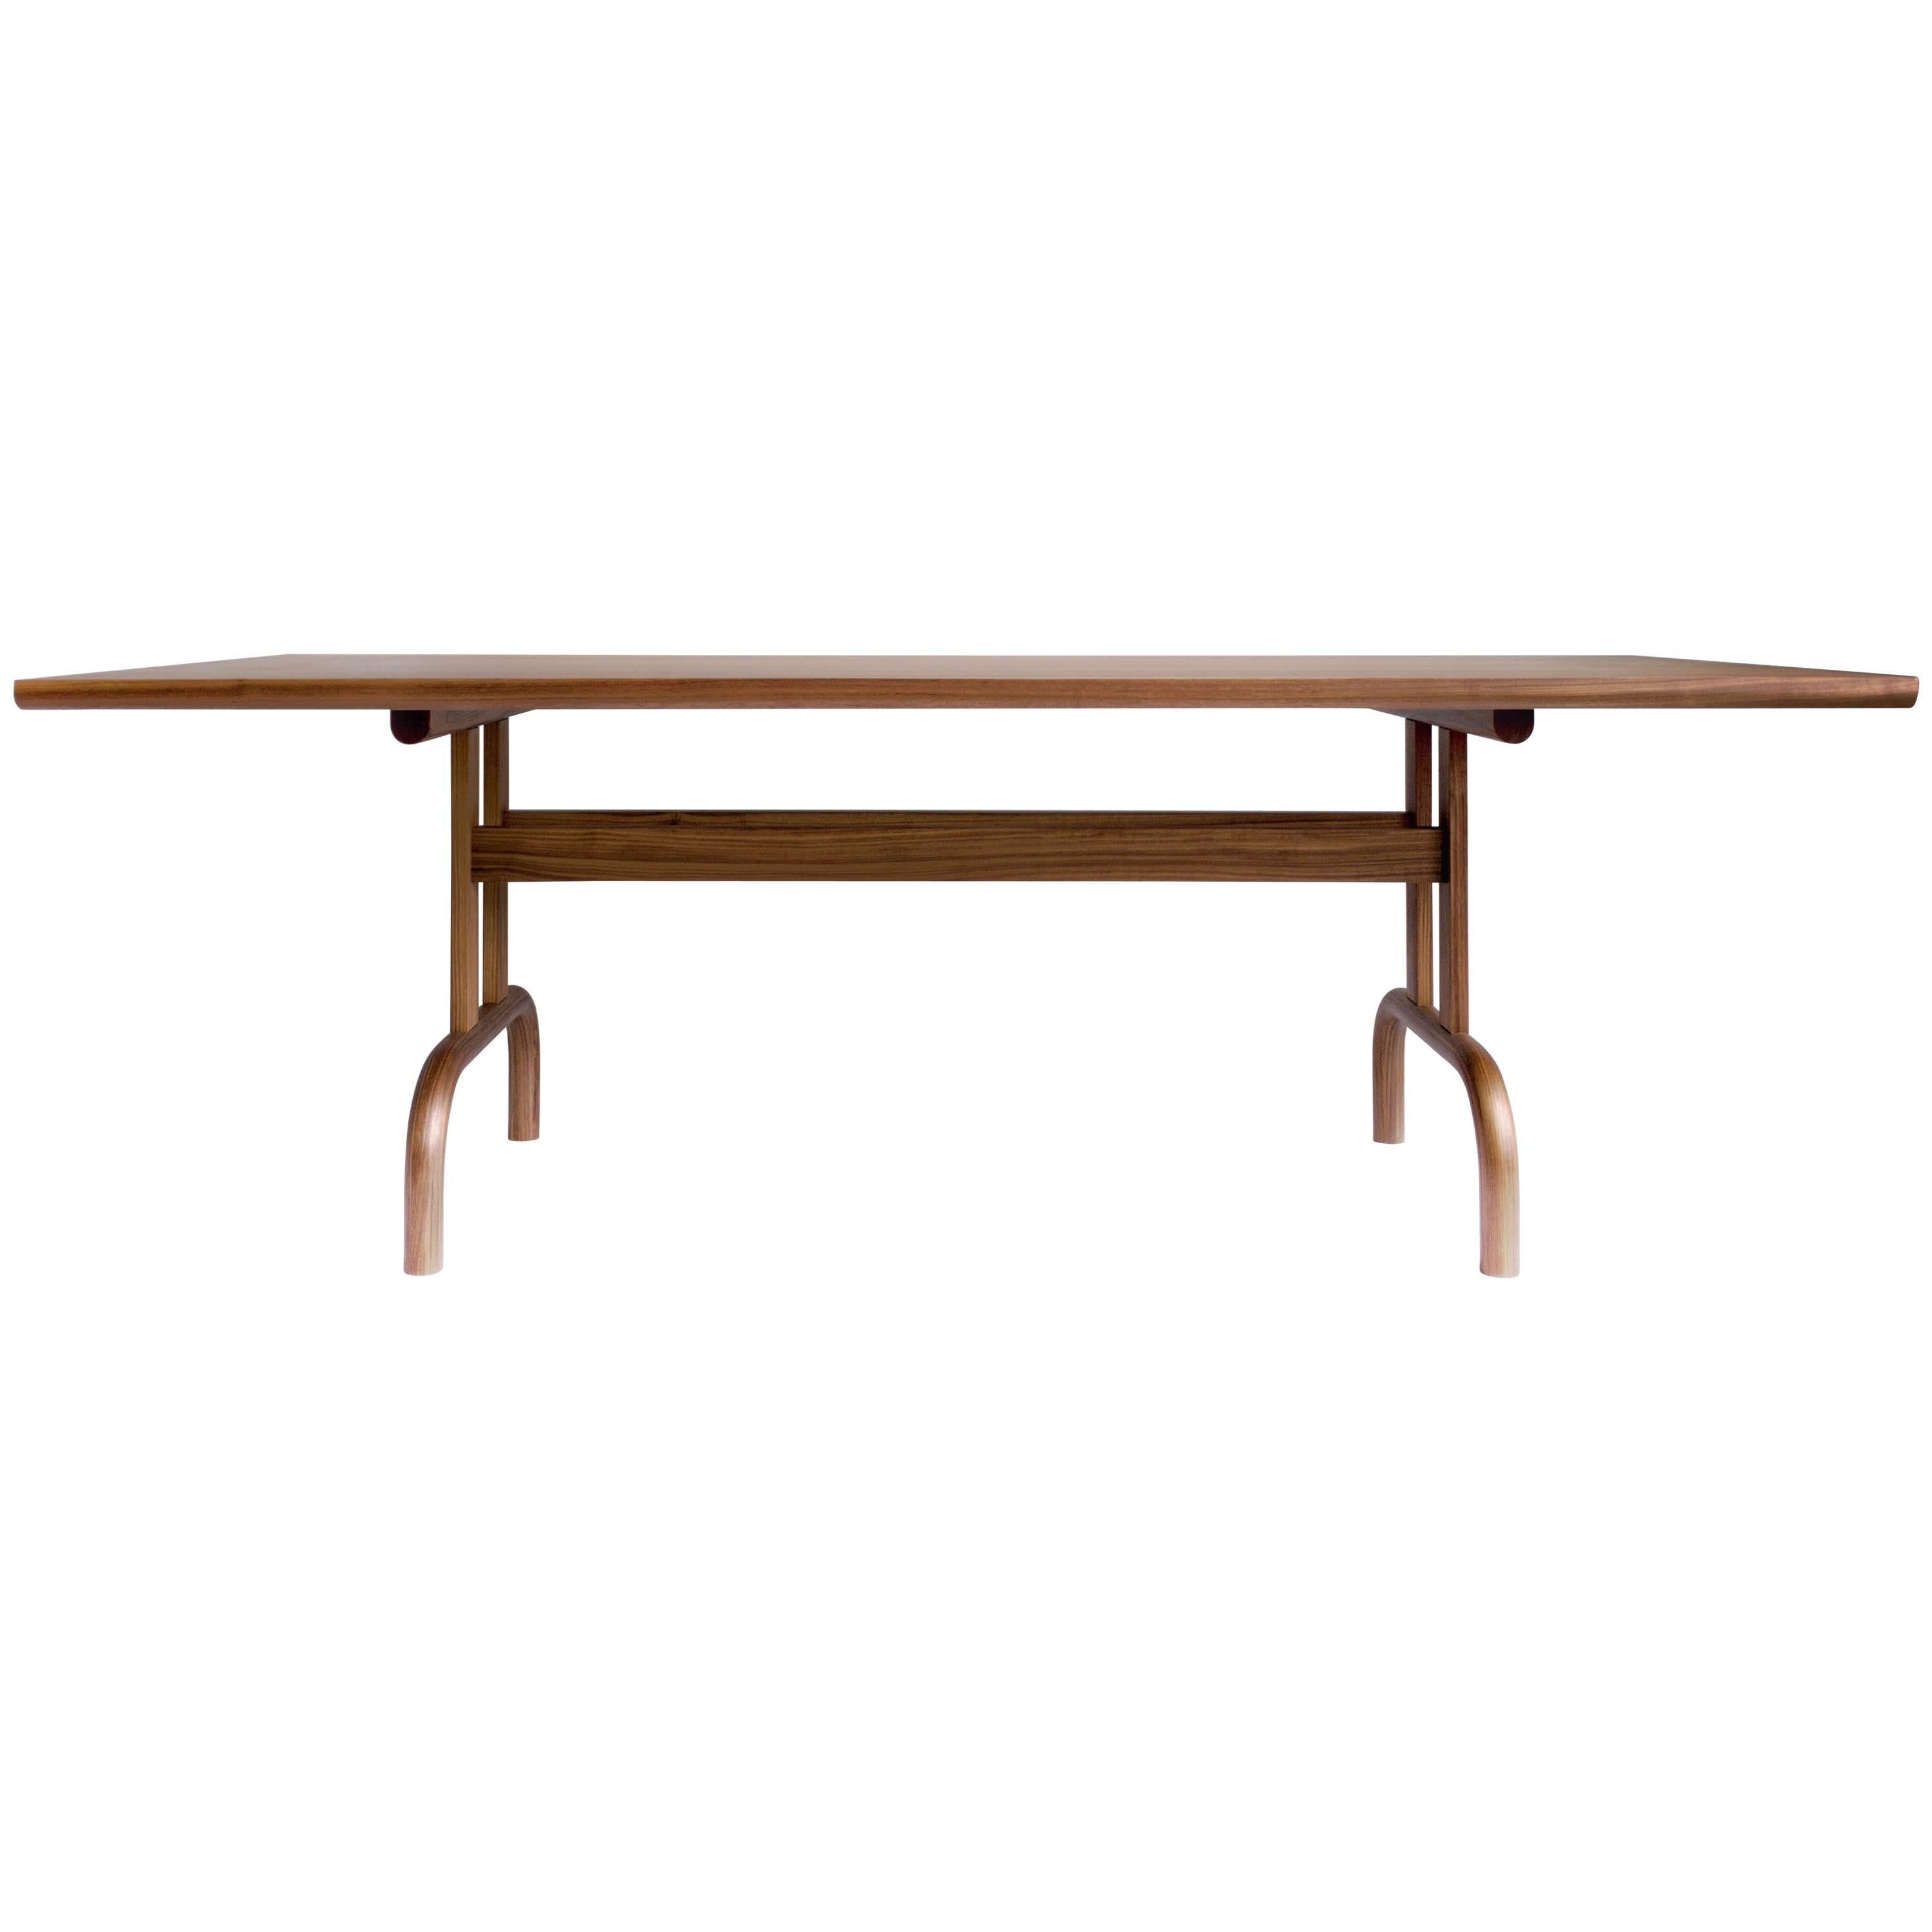 Feast Dining Table in Solid Wood and Brass by Bowen Liu